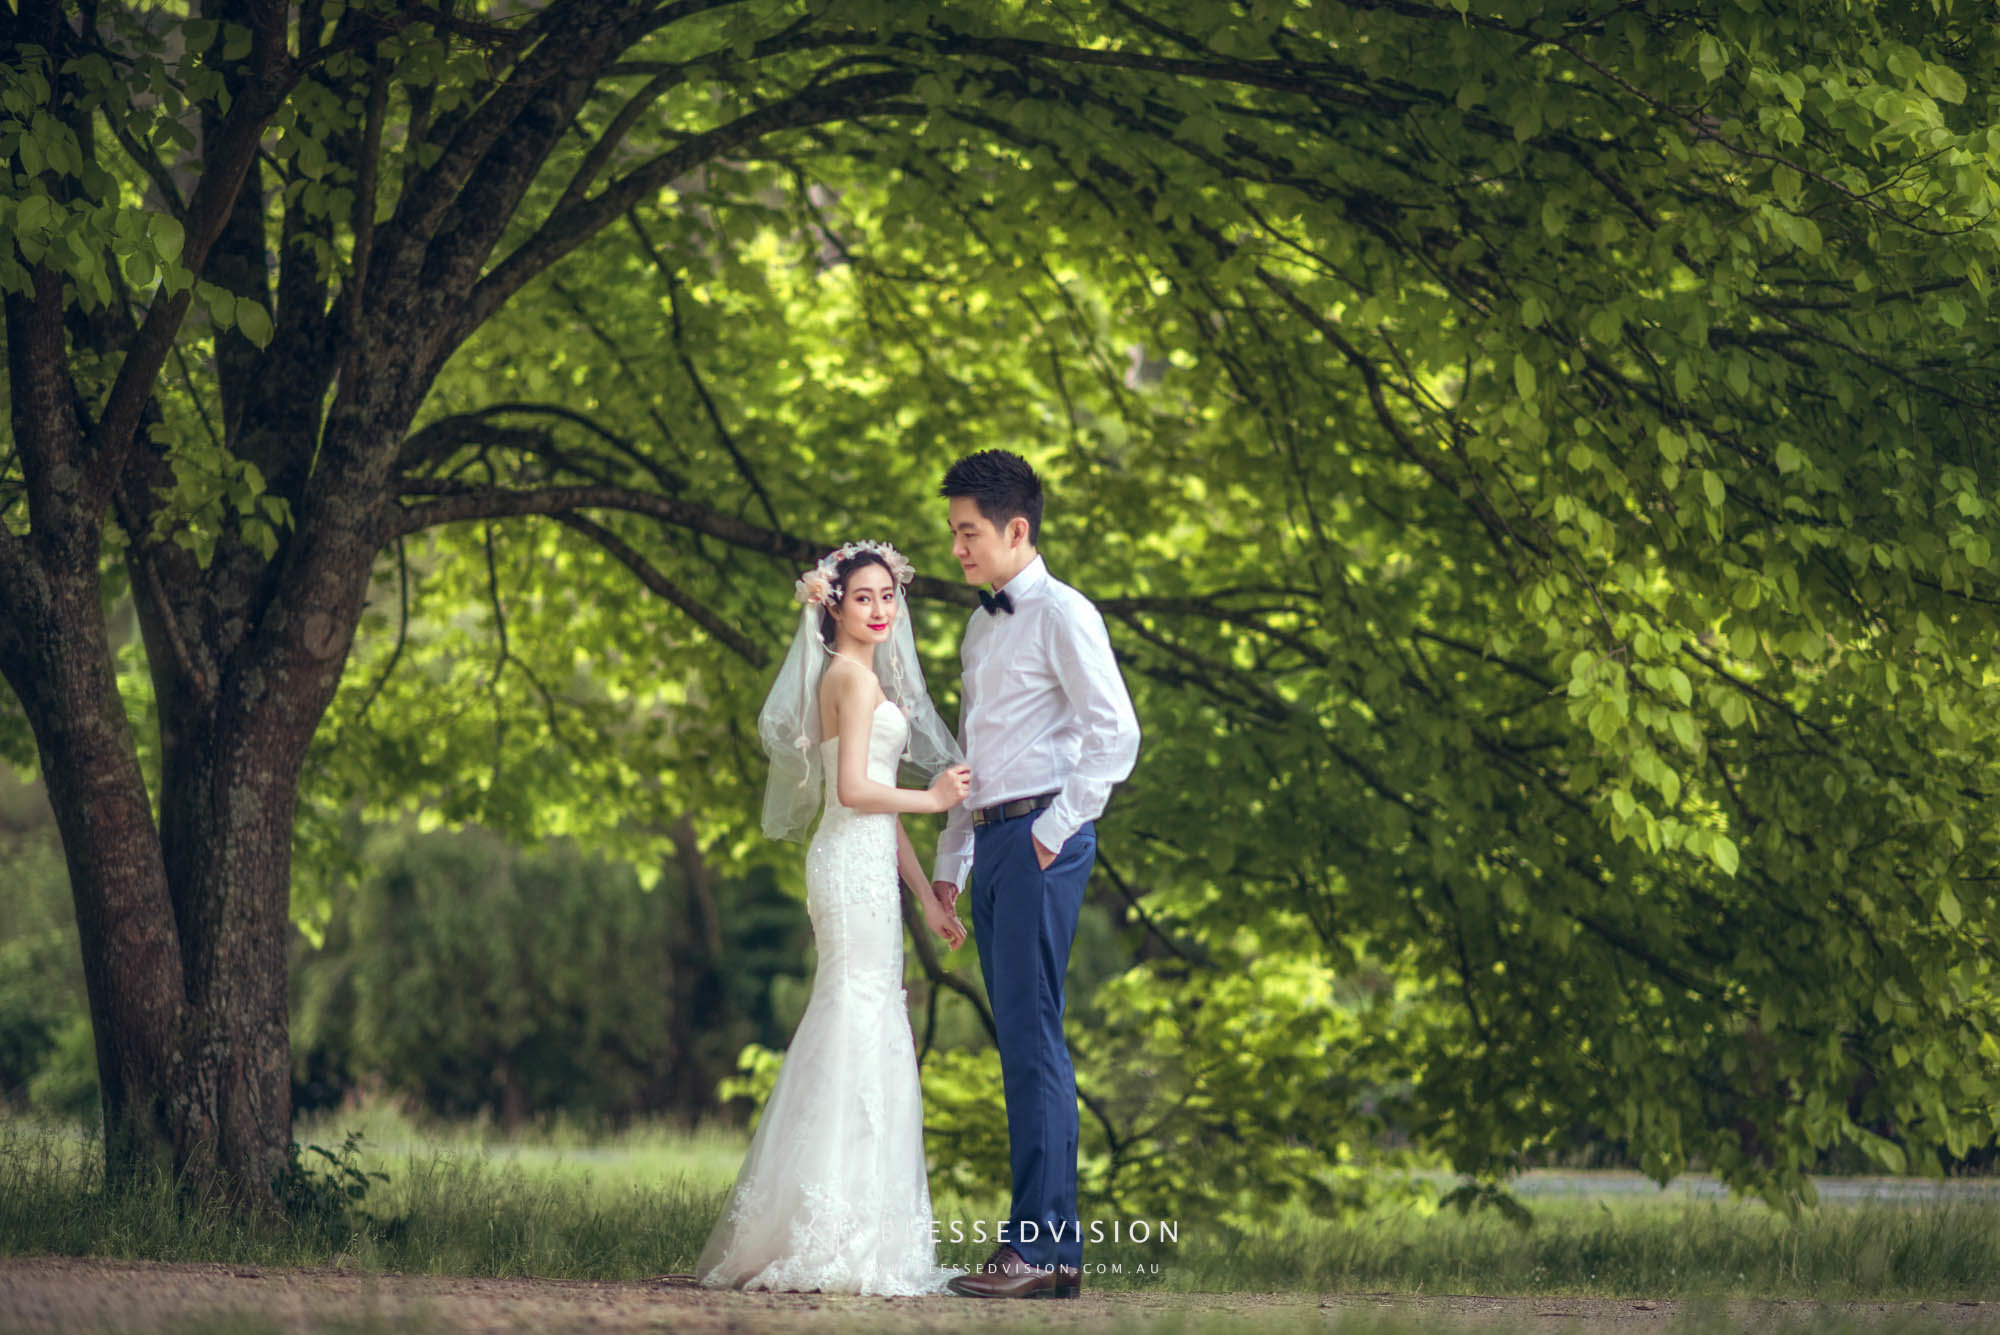 Blessed Wedding Photography: Redwood Pre Wedding Blessed Vision Melbourne Prewedding